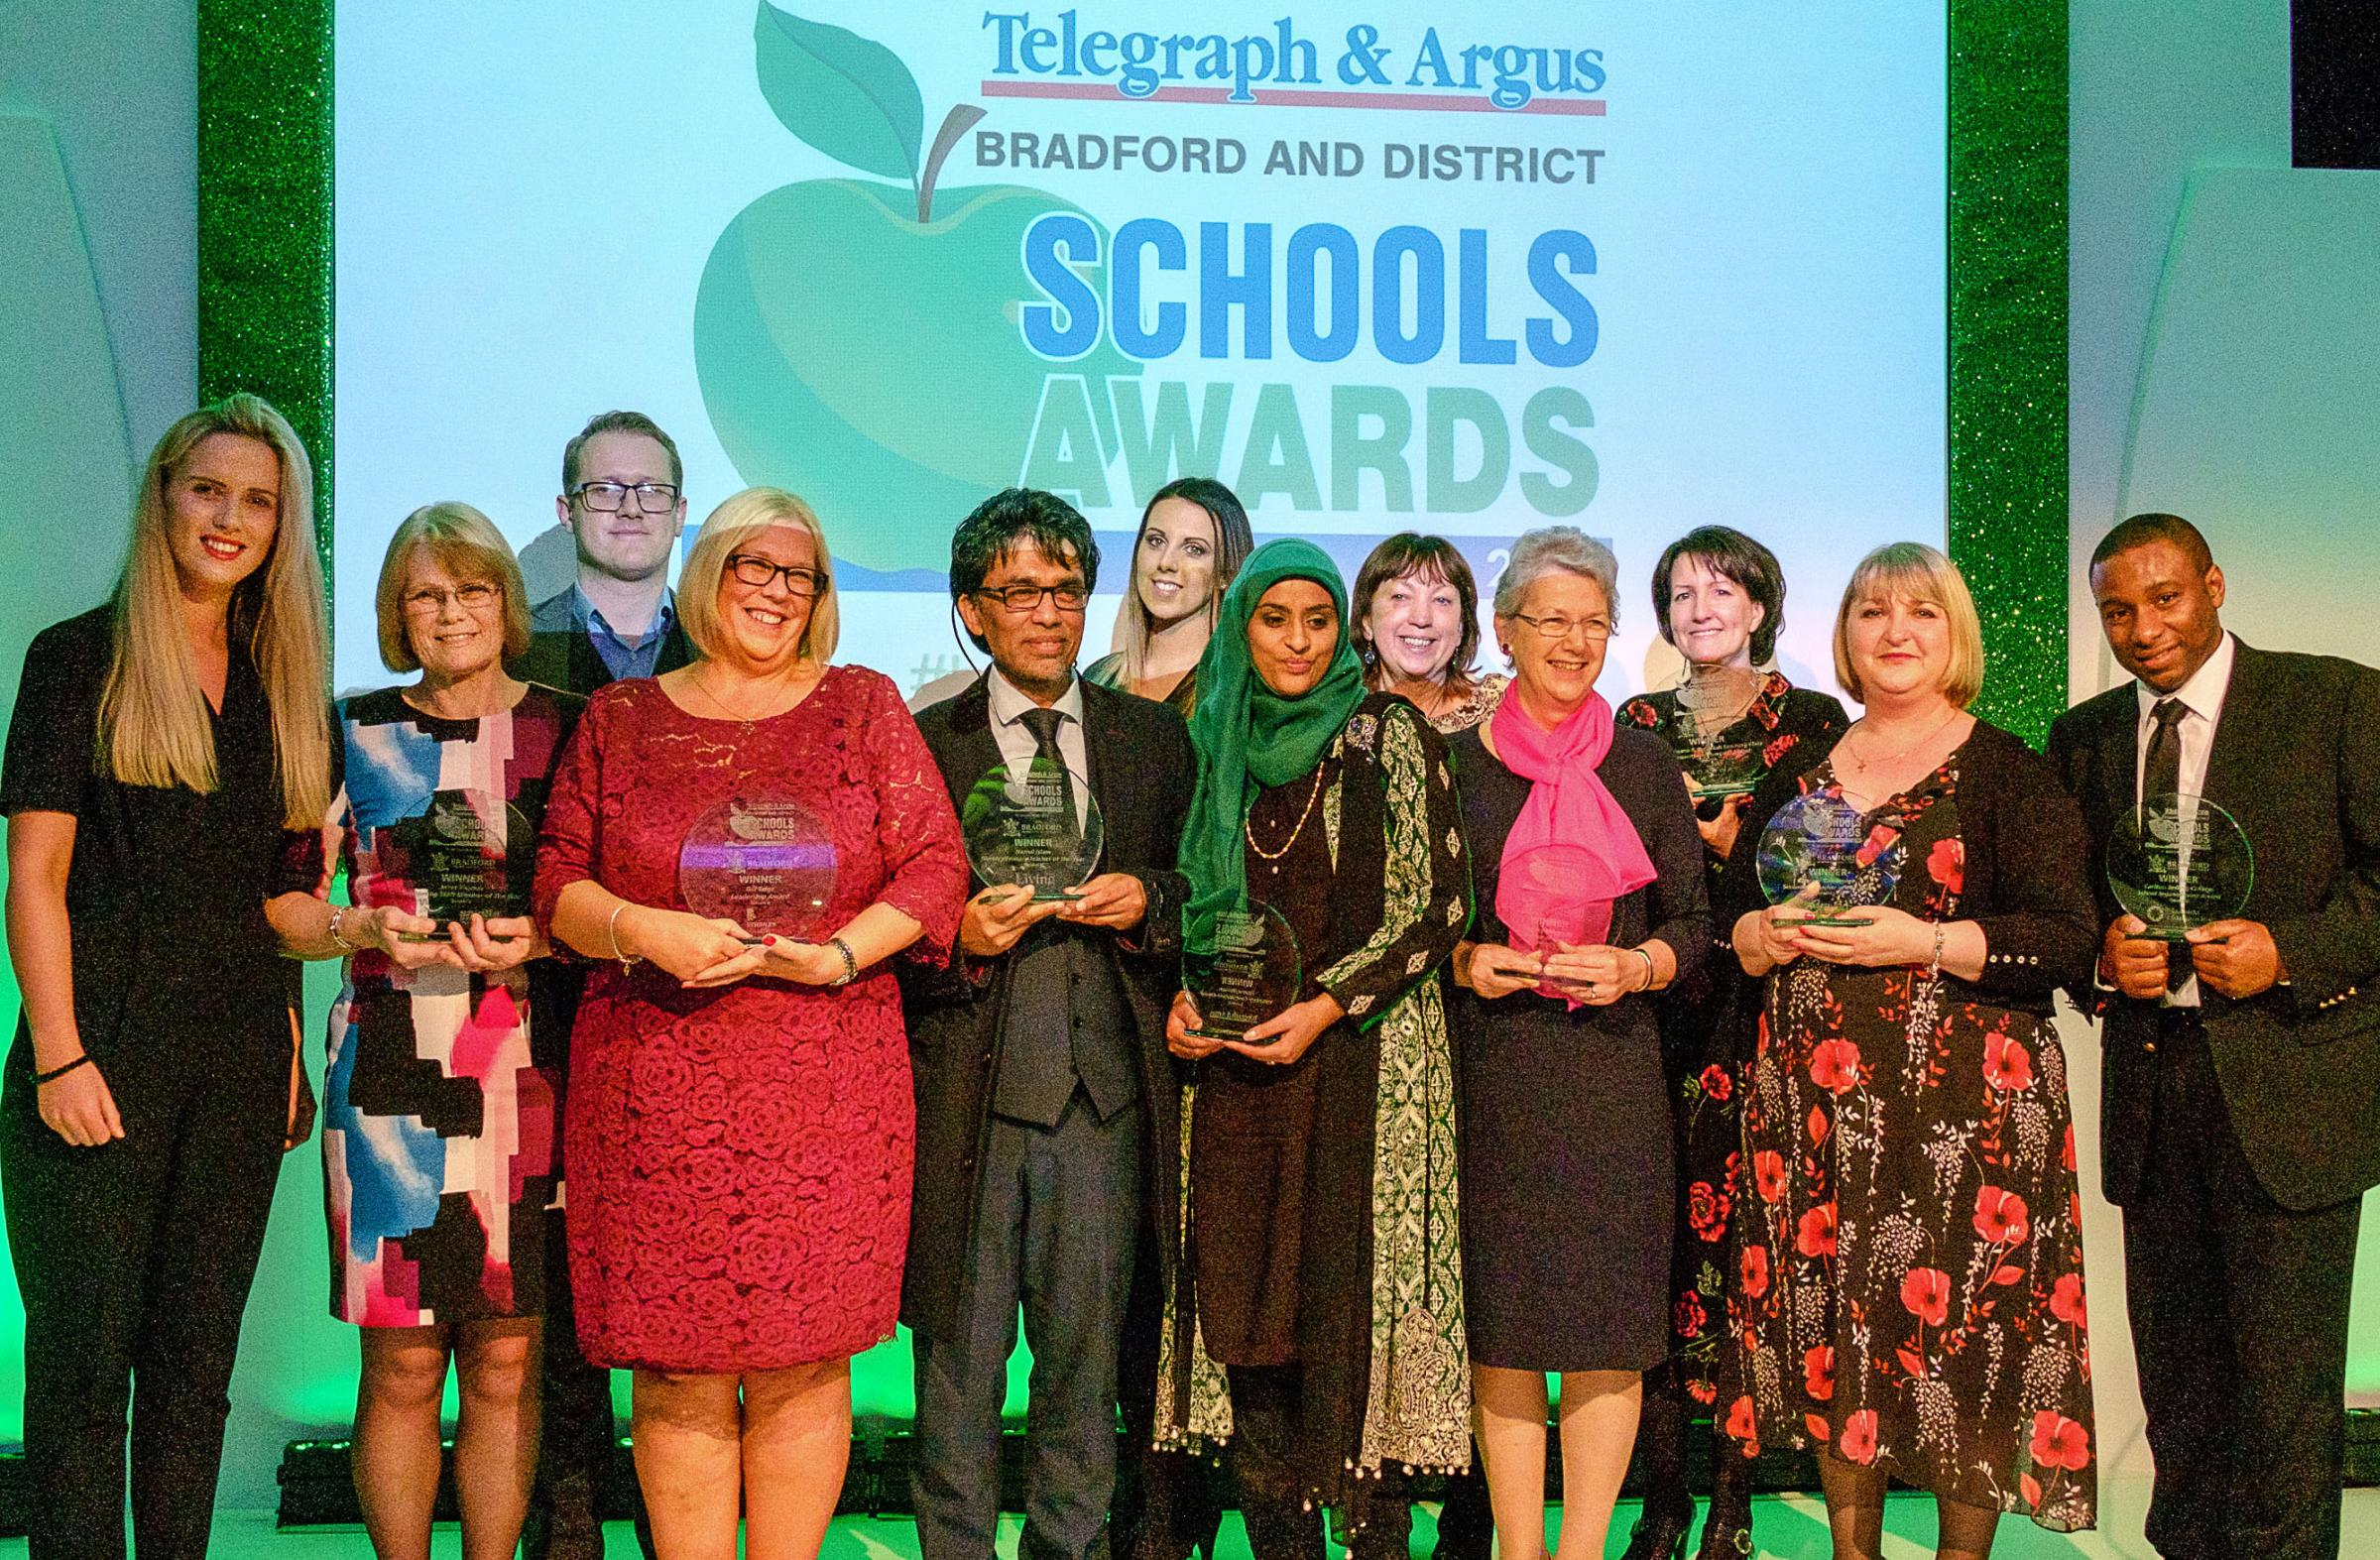 The winners from the 2018 Telegraph & Argus Bradford Schools Awards take to the stage at the Aagrah Midpoint Suite